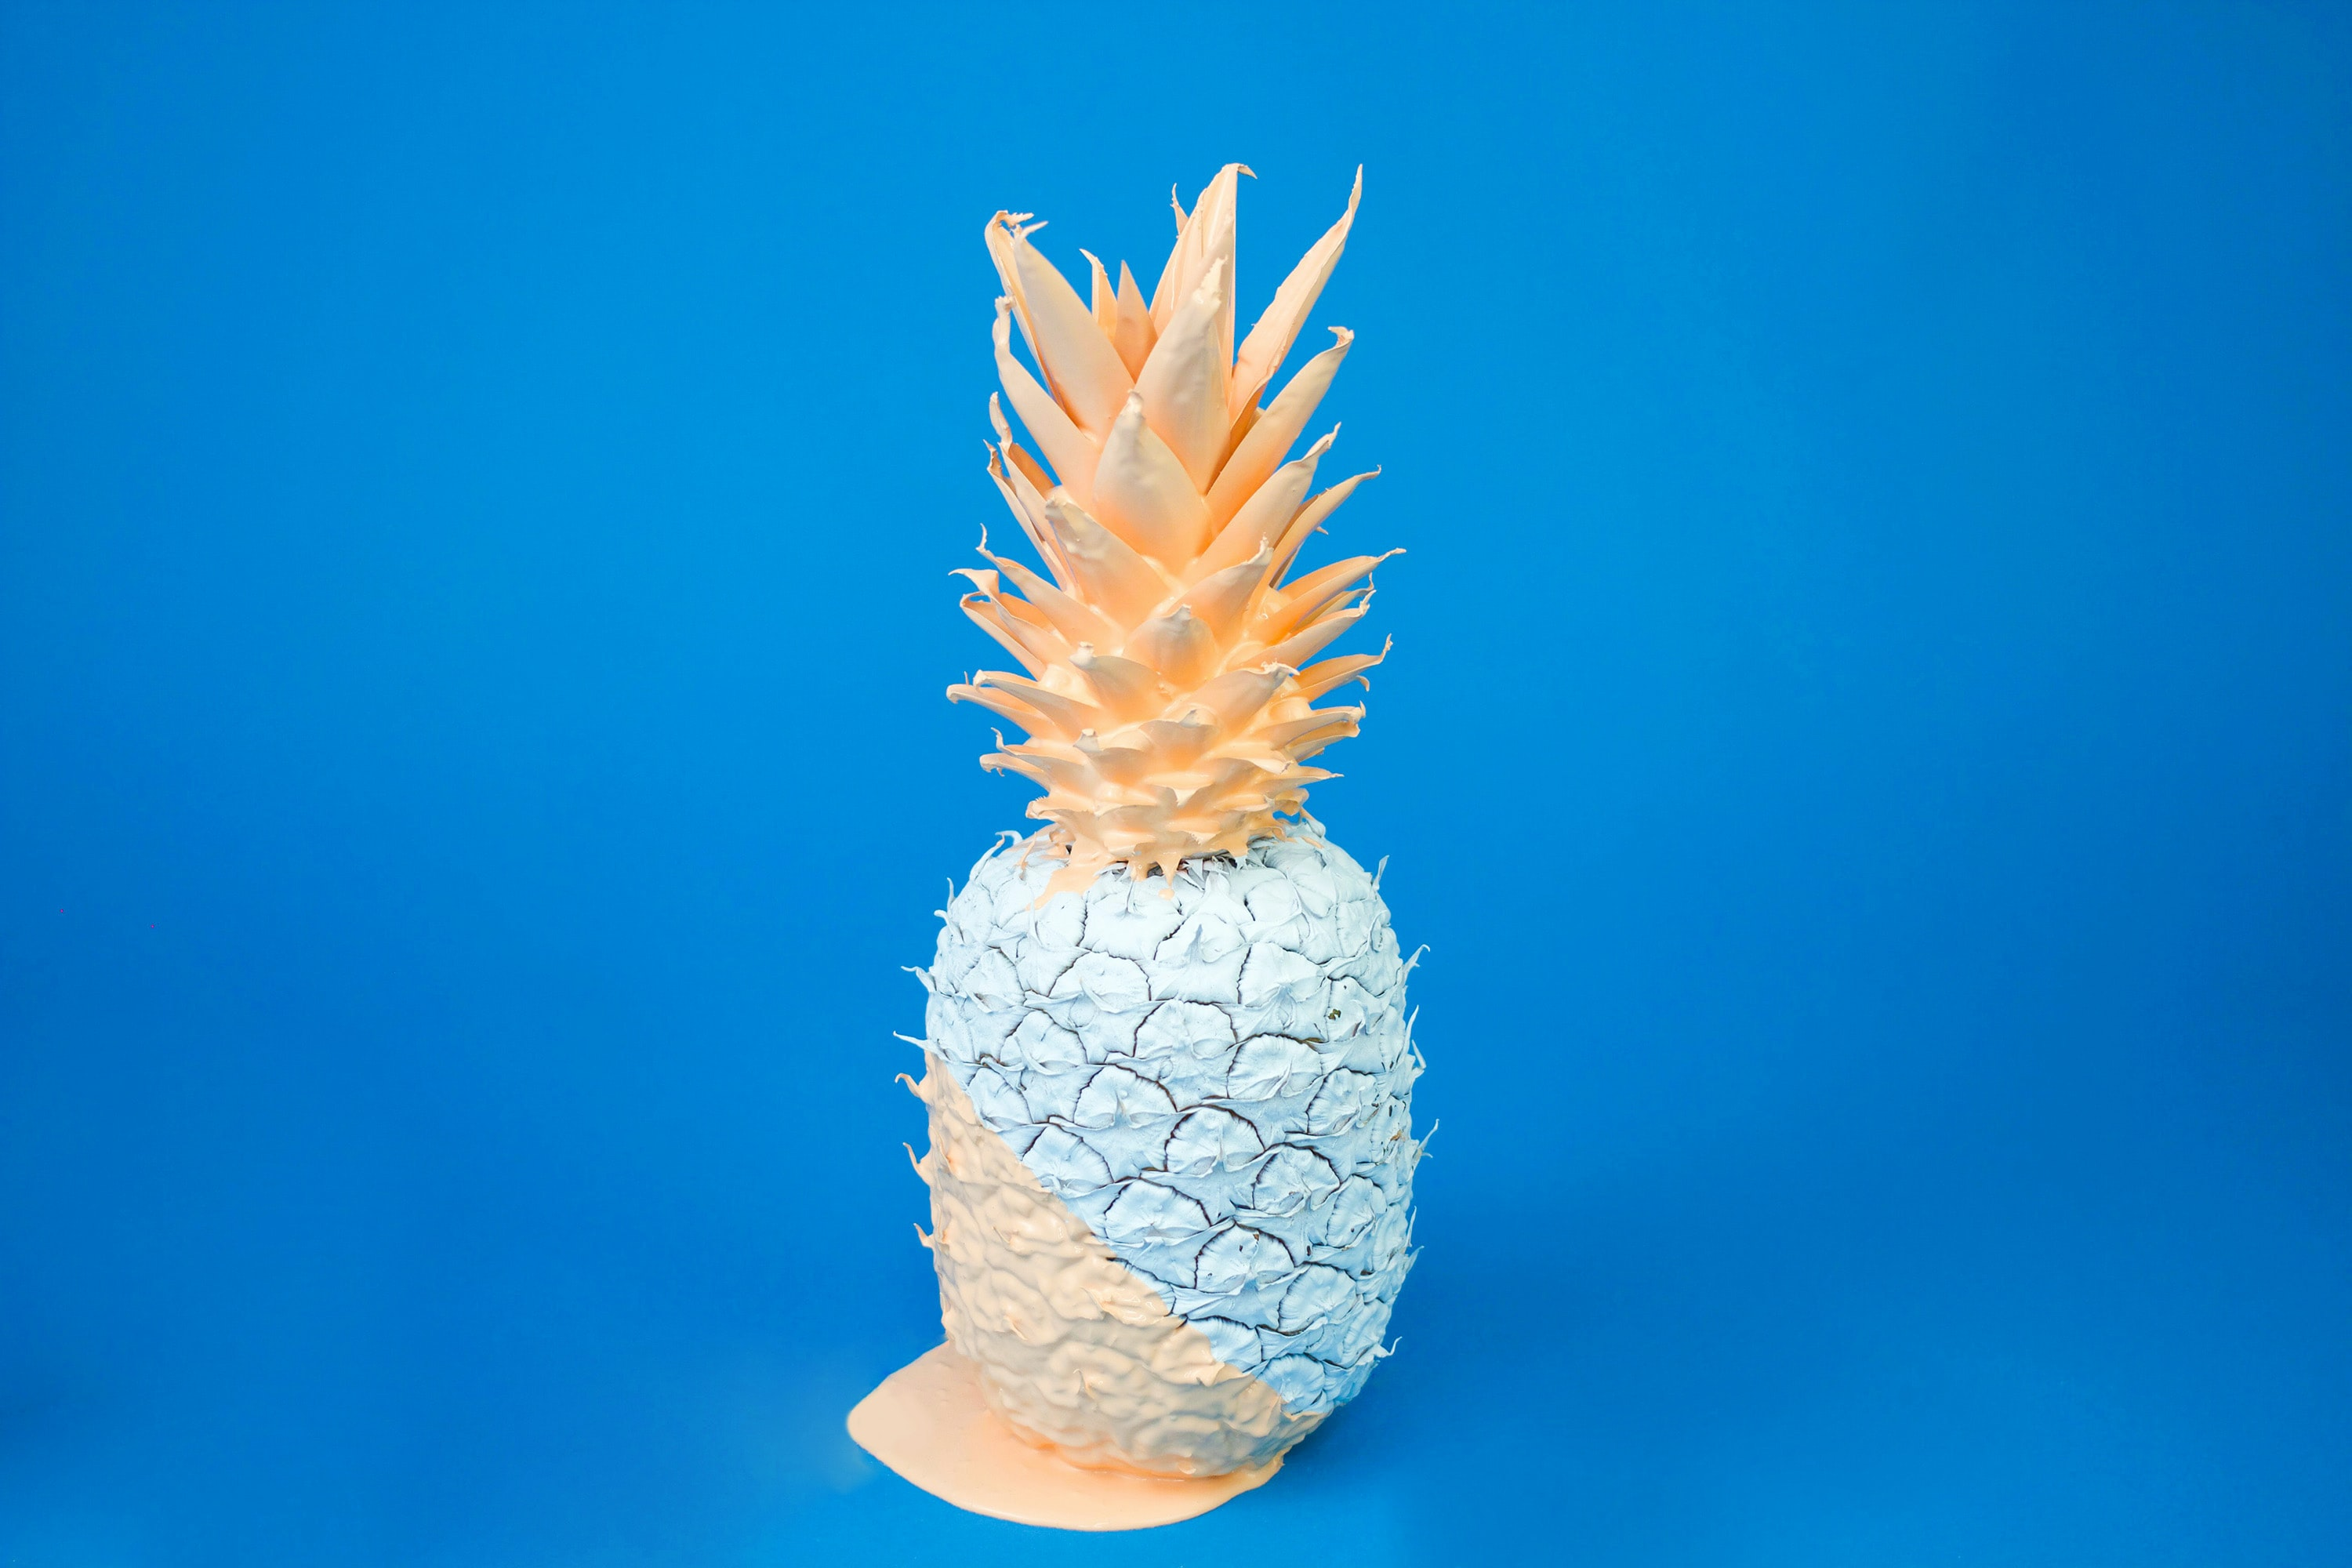 A pineapple covered in duotone paint.